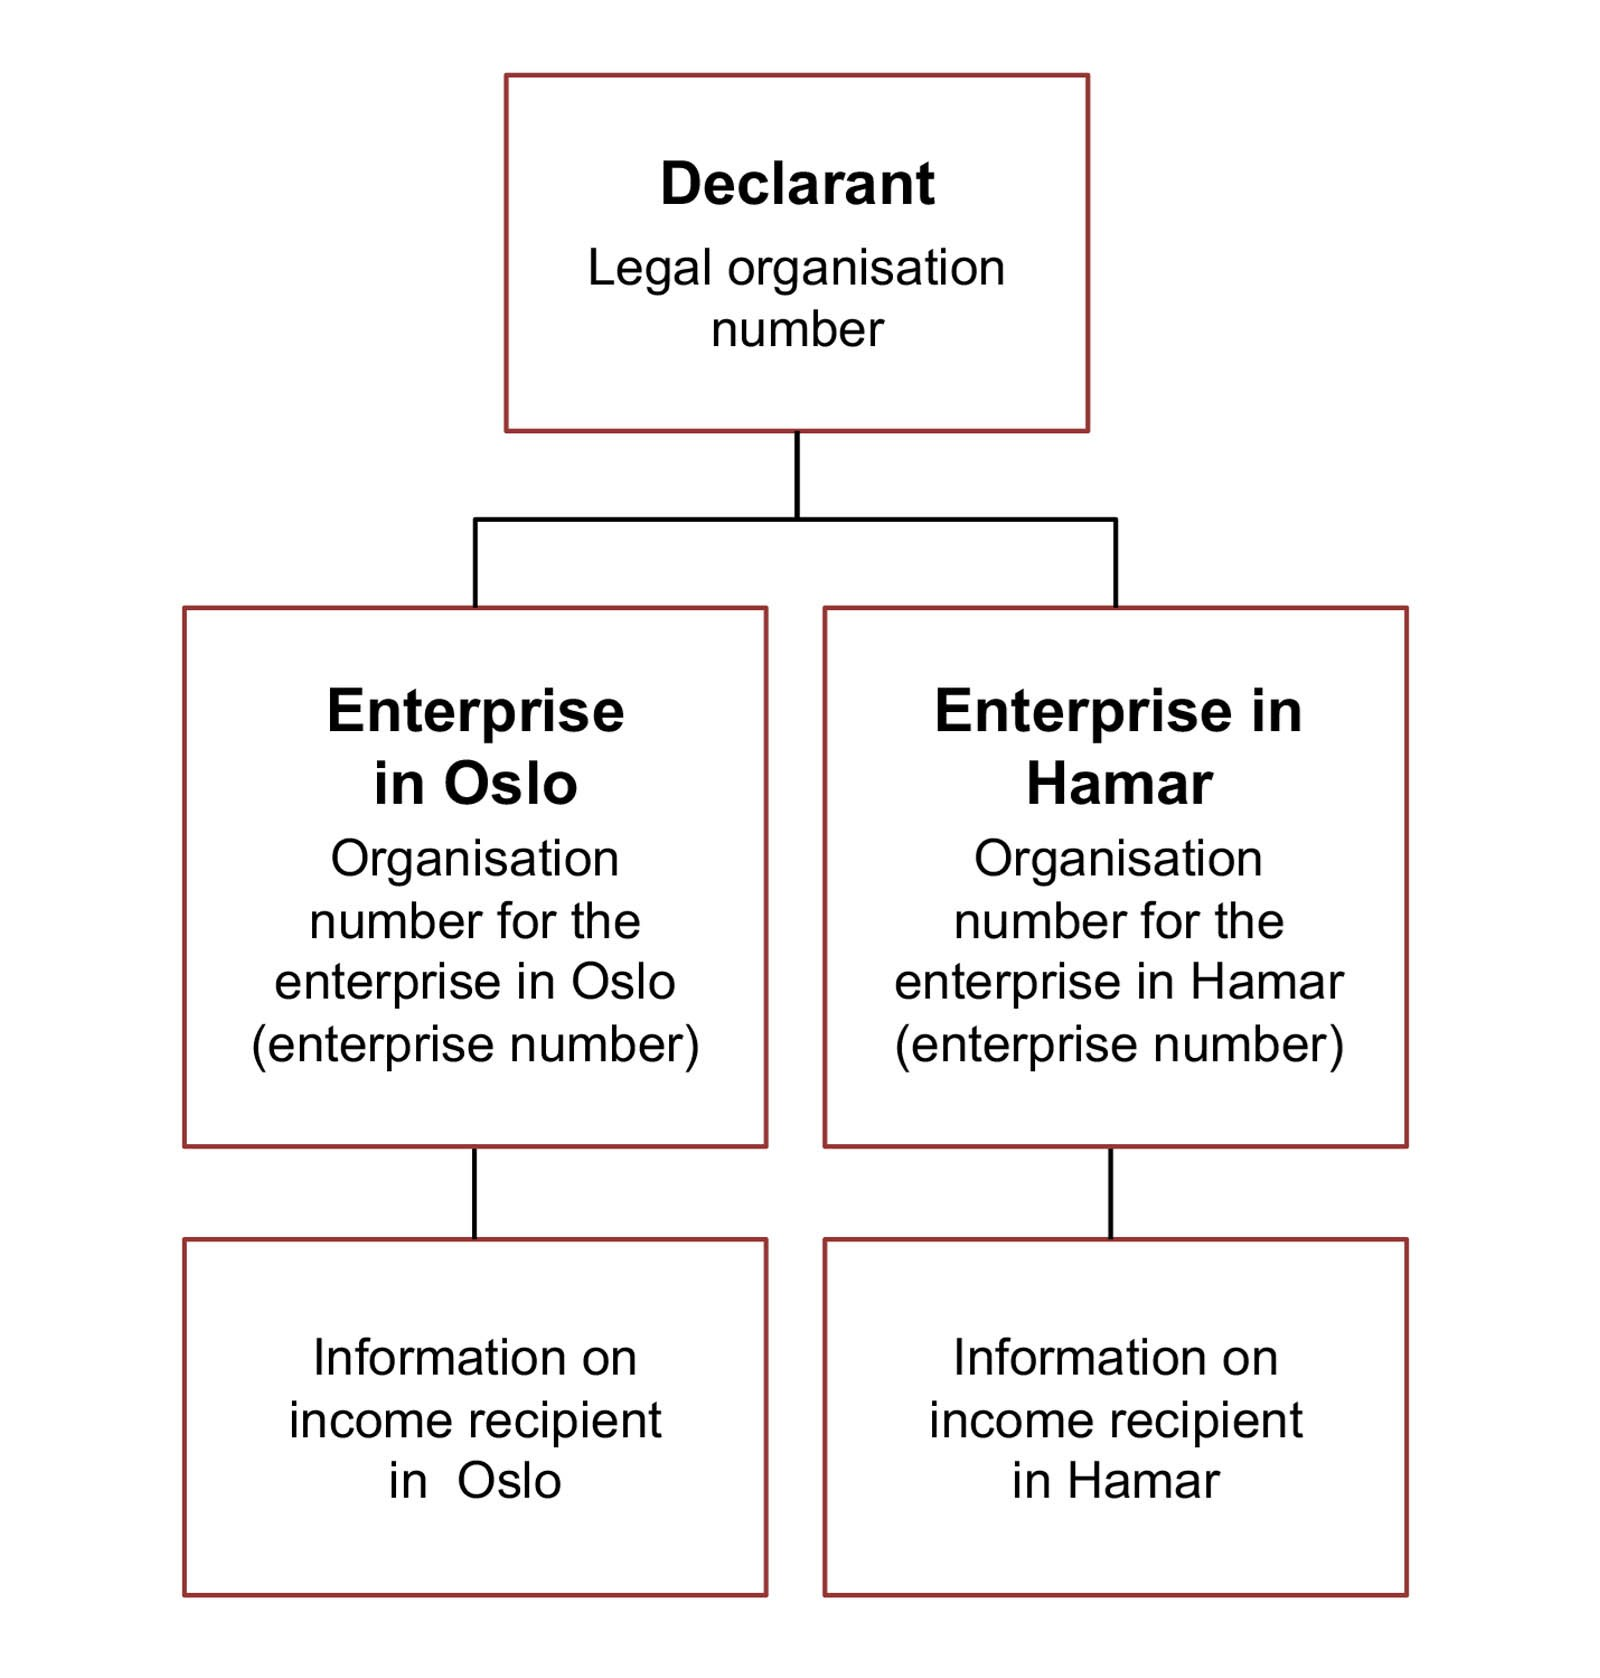 Diagram. Specify the legal organisation number of the enterprise that is the declarant. Specify the organisation numbers of the enterprises in Hamar and Oslo. Information on income recipients is linked to Hamar and Oslo. The text in the article explains this in more detail.